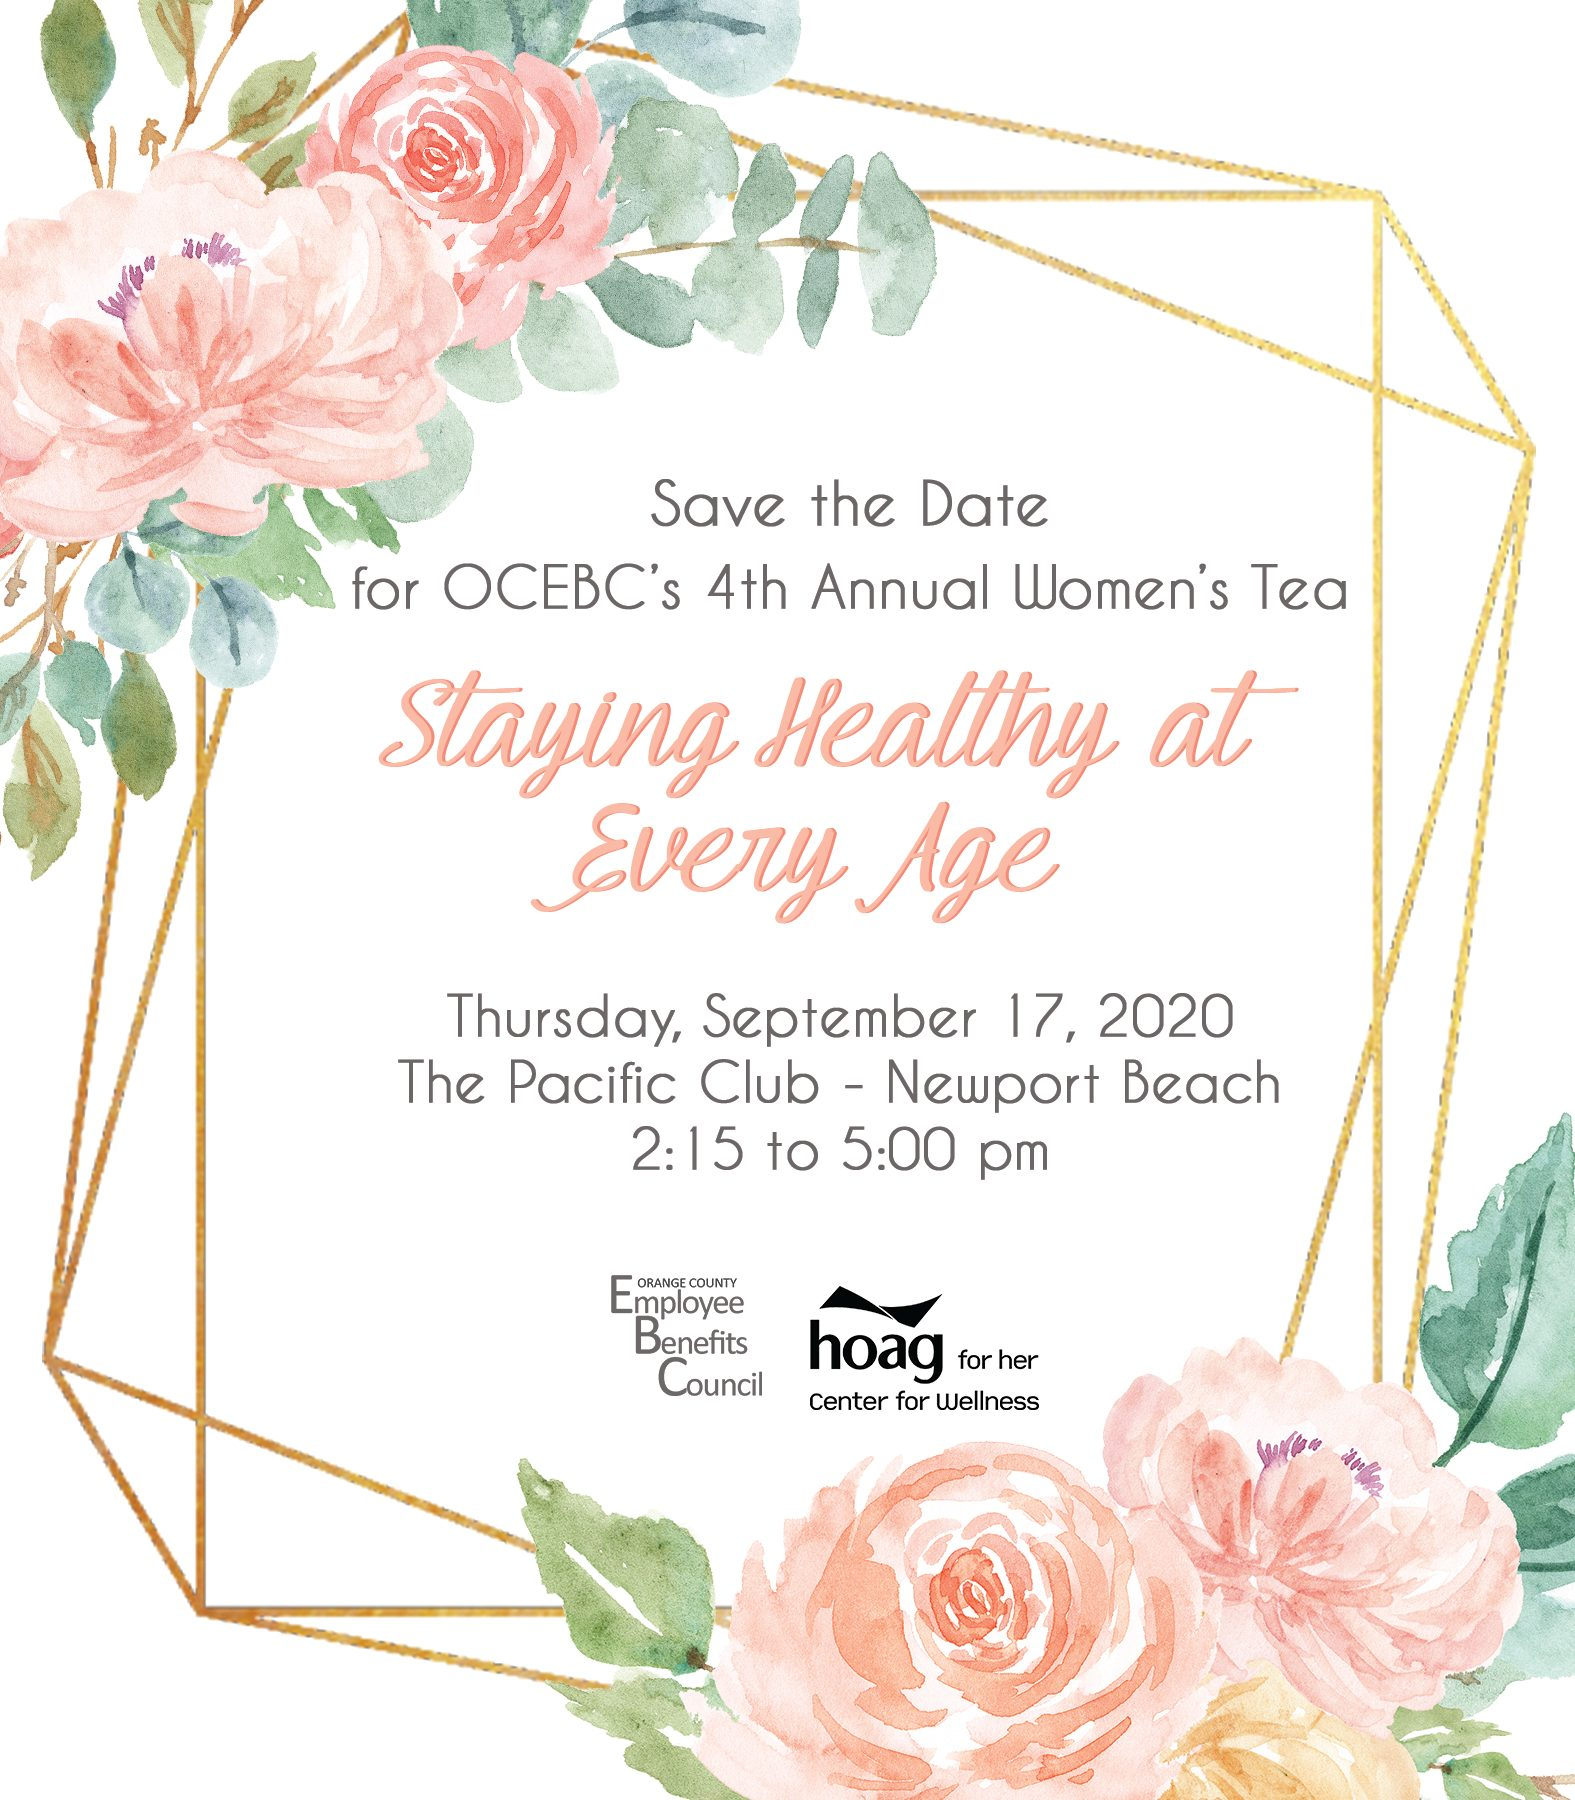 4th Annual Staying Healthy at Every Age Women's Tea @ The Pacific Club